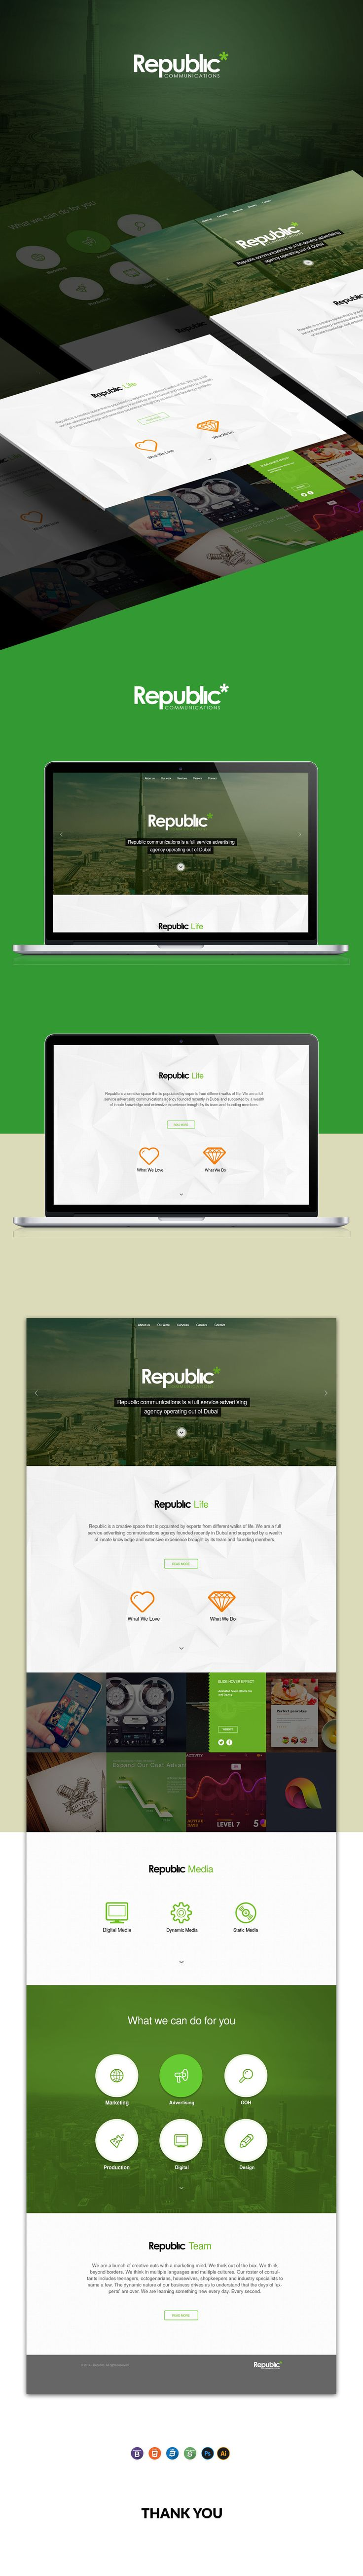 Republic on Behance